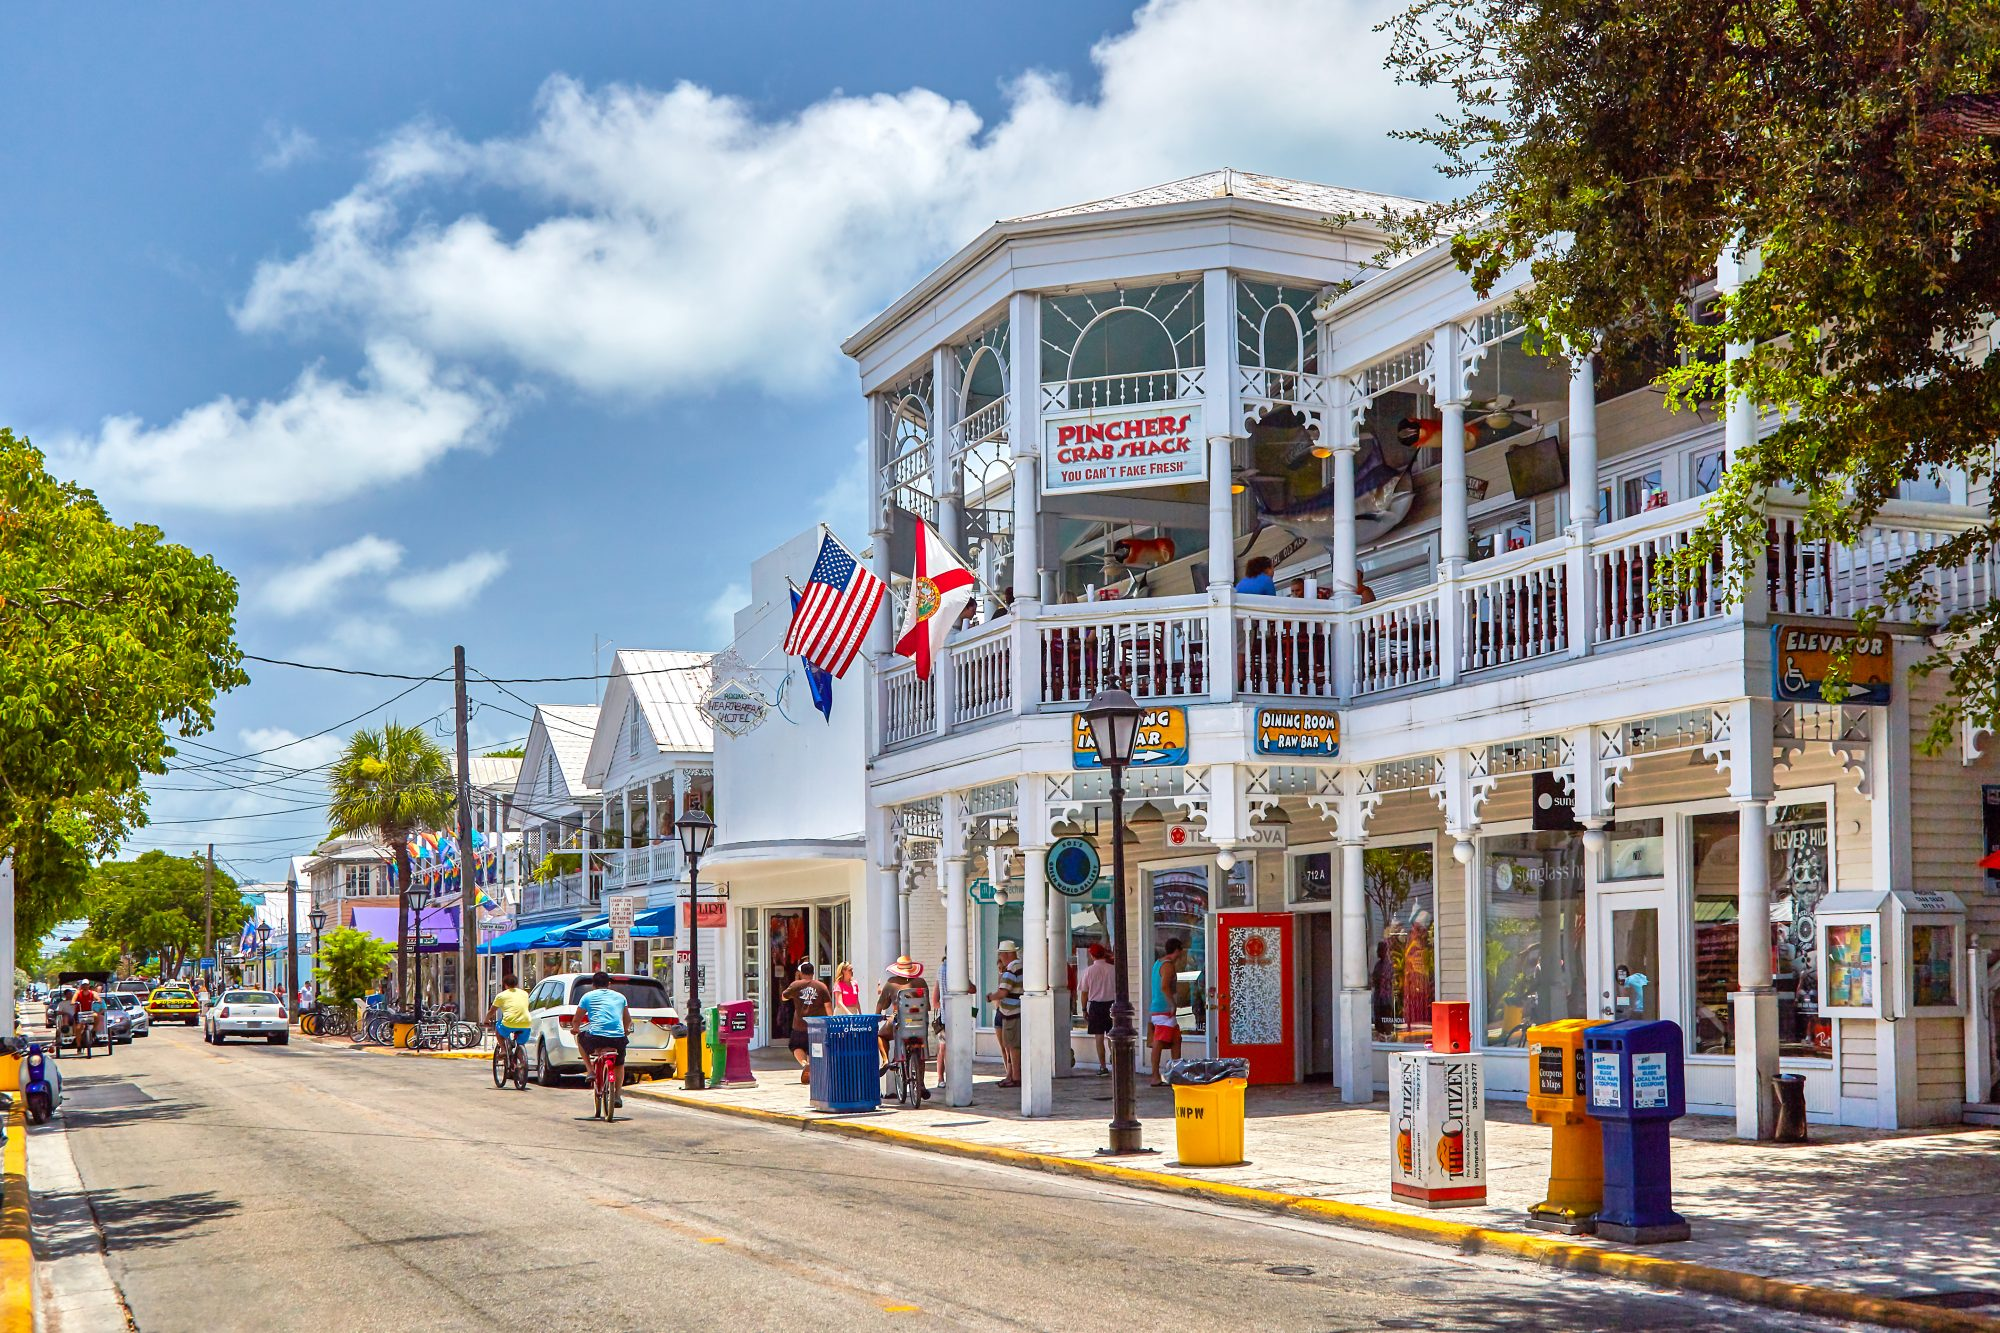 Whether you're in the market for a mini buoy modeled off of the Southernmost Point, or a slightly offensive, only-in-Key-West statement T-shirt, there are plenty of souvenir shops that line Duval Street. Or check out one of the elegant local boutiques lik